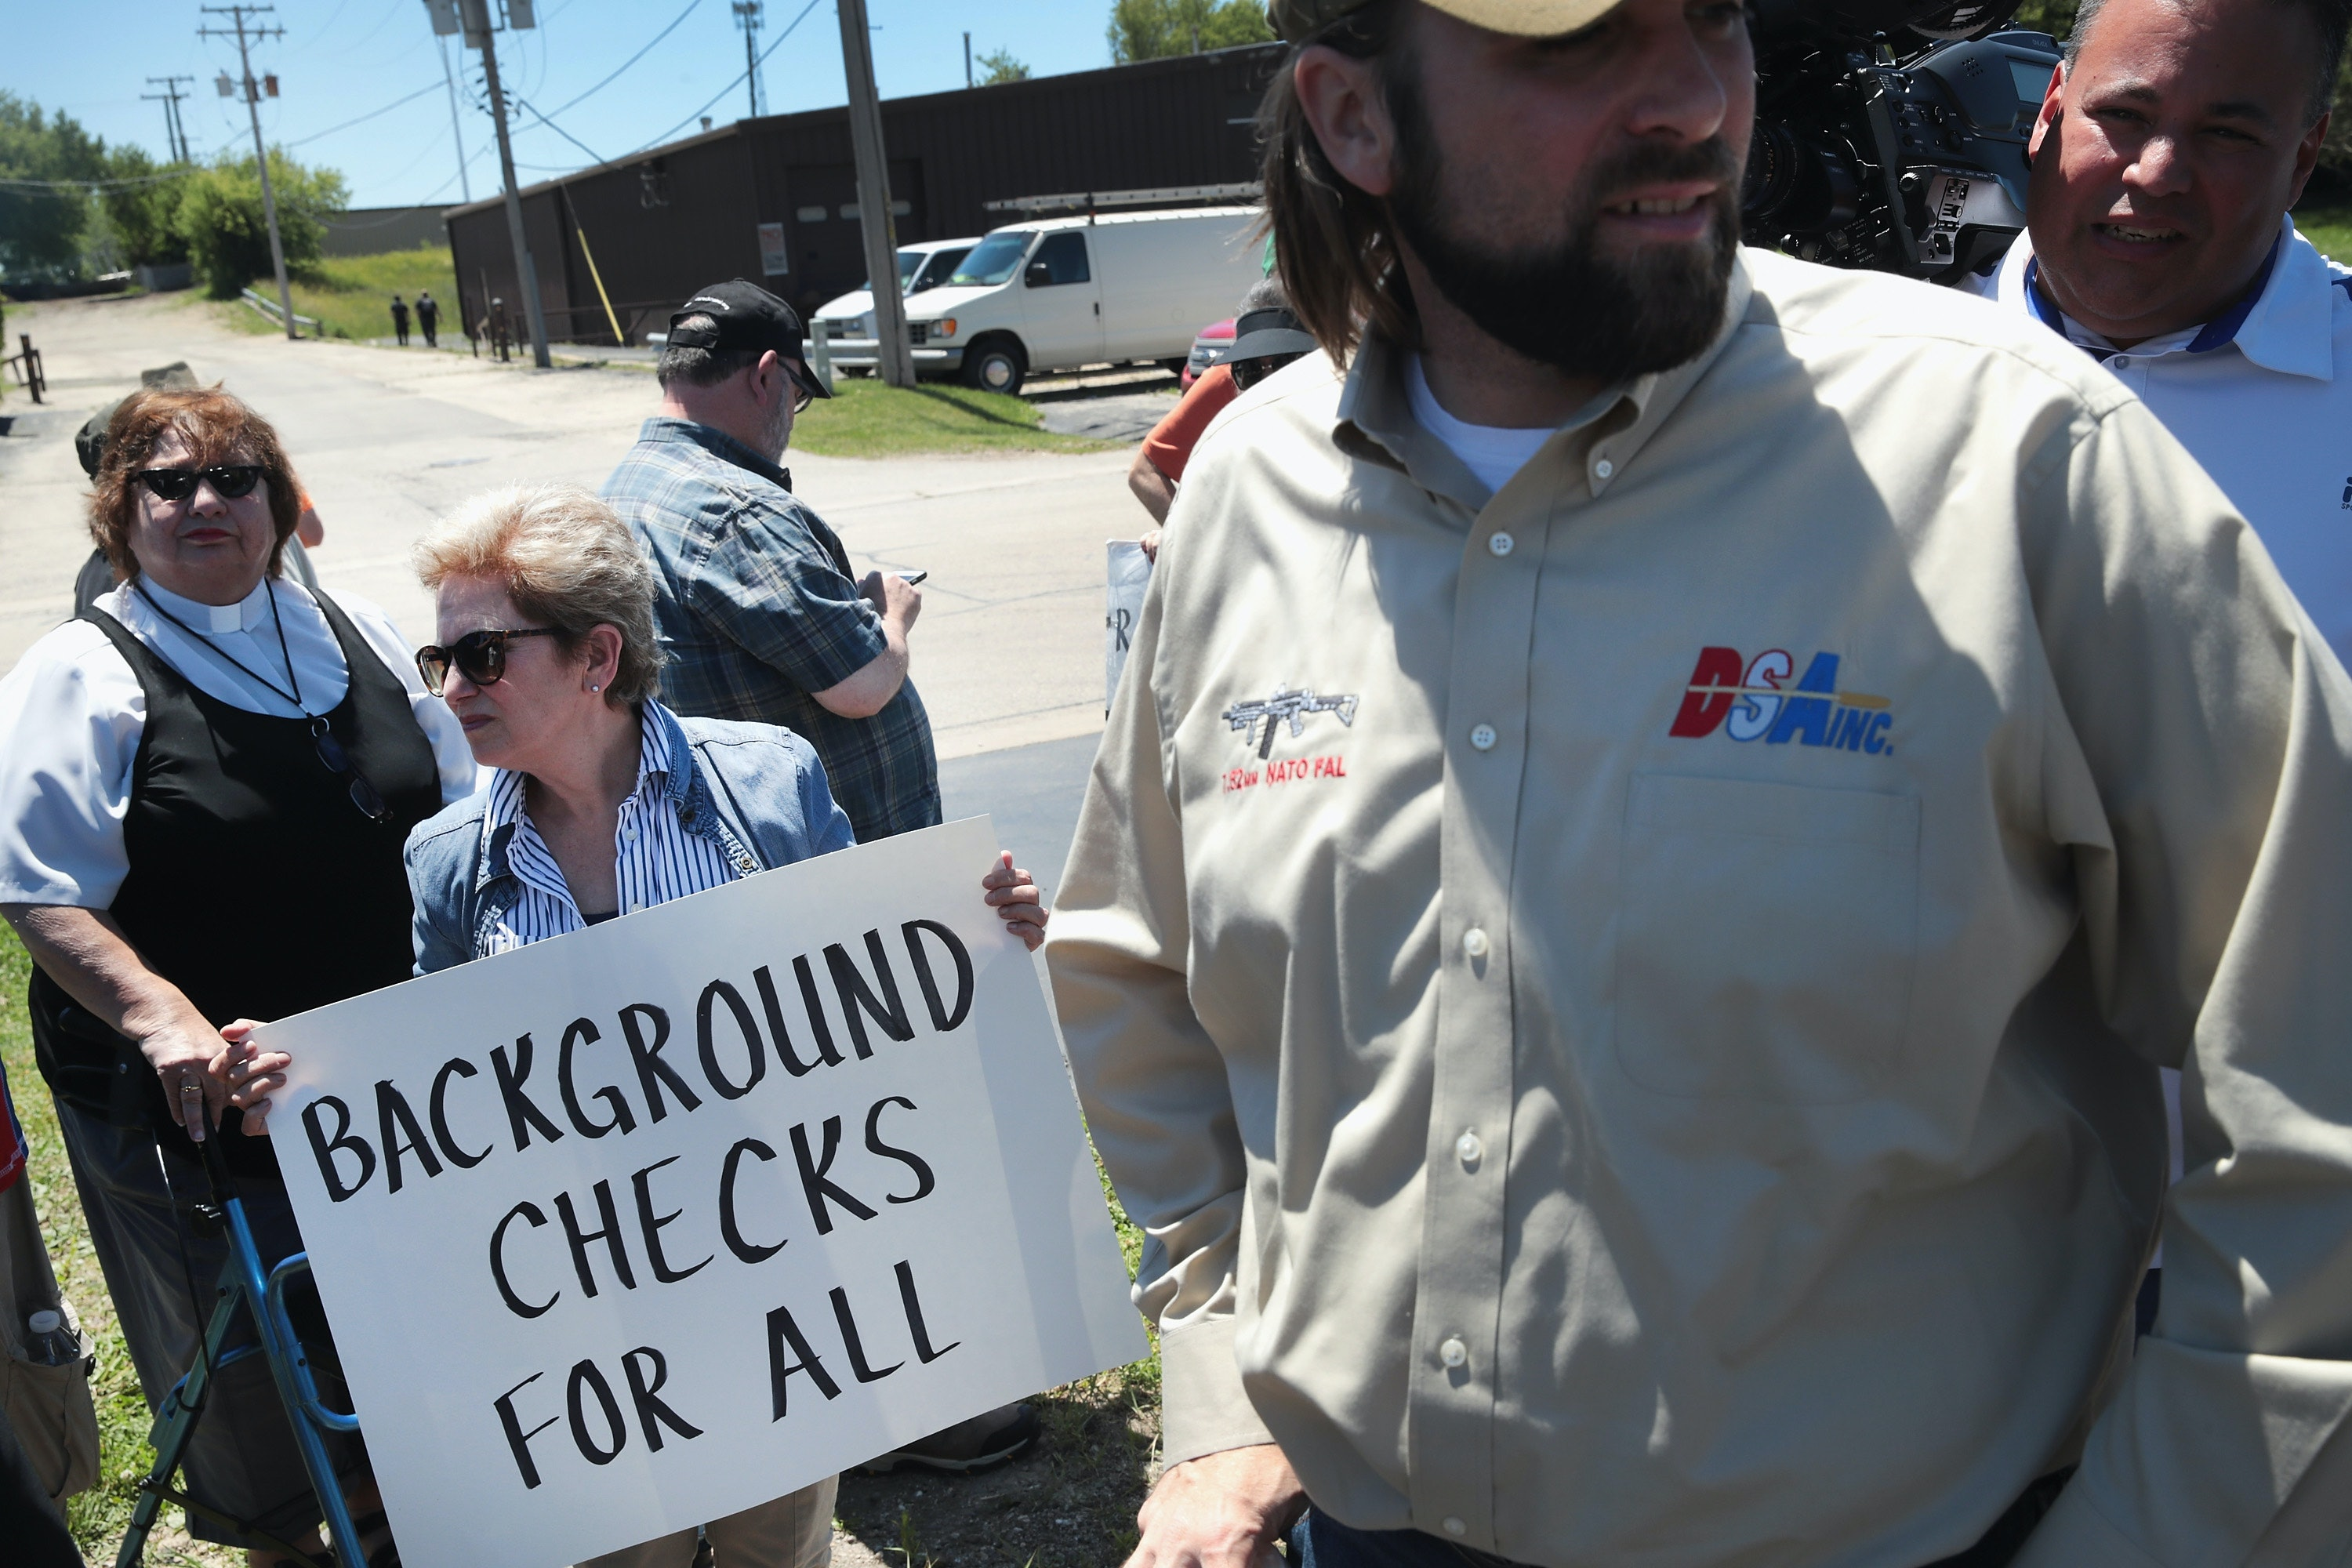 Bipartisan group in Senate aims to strengthen background check system for guns